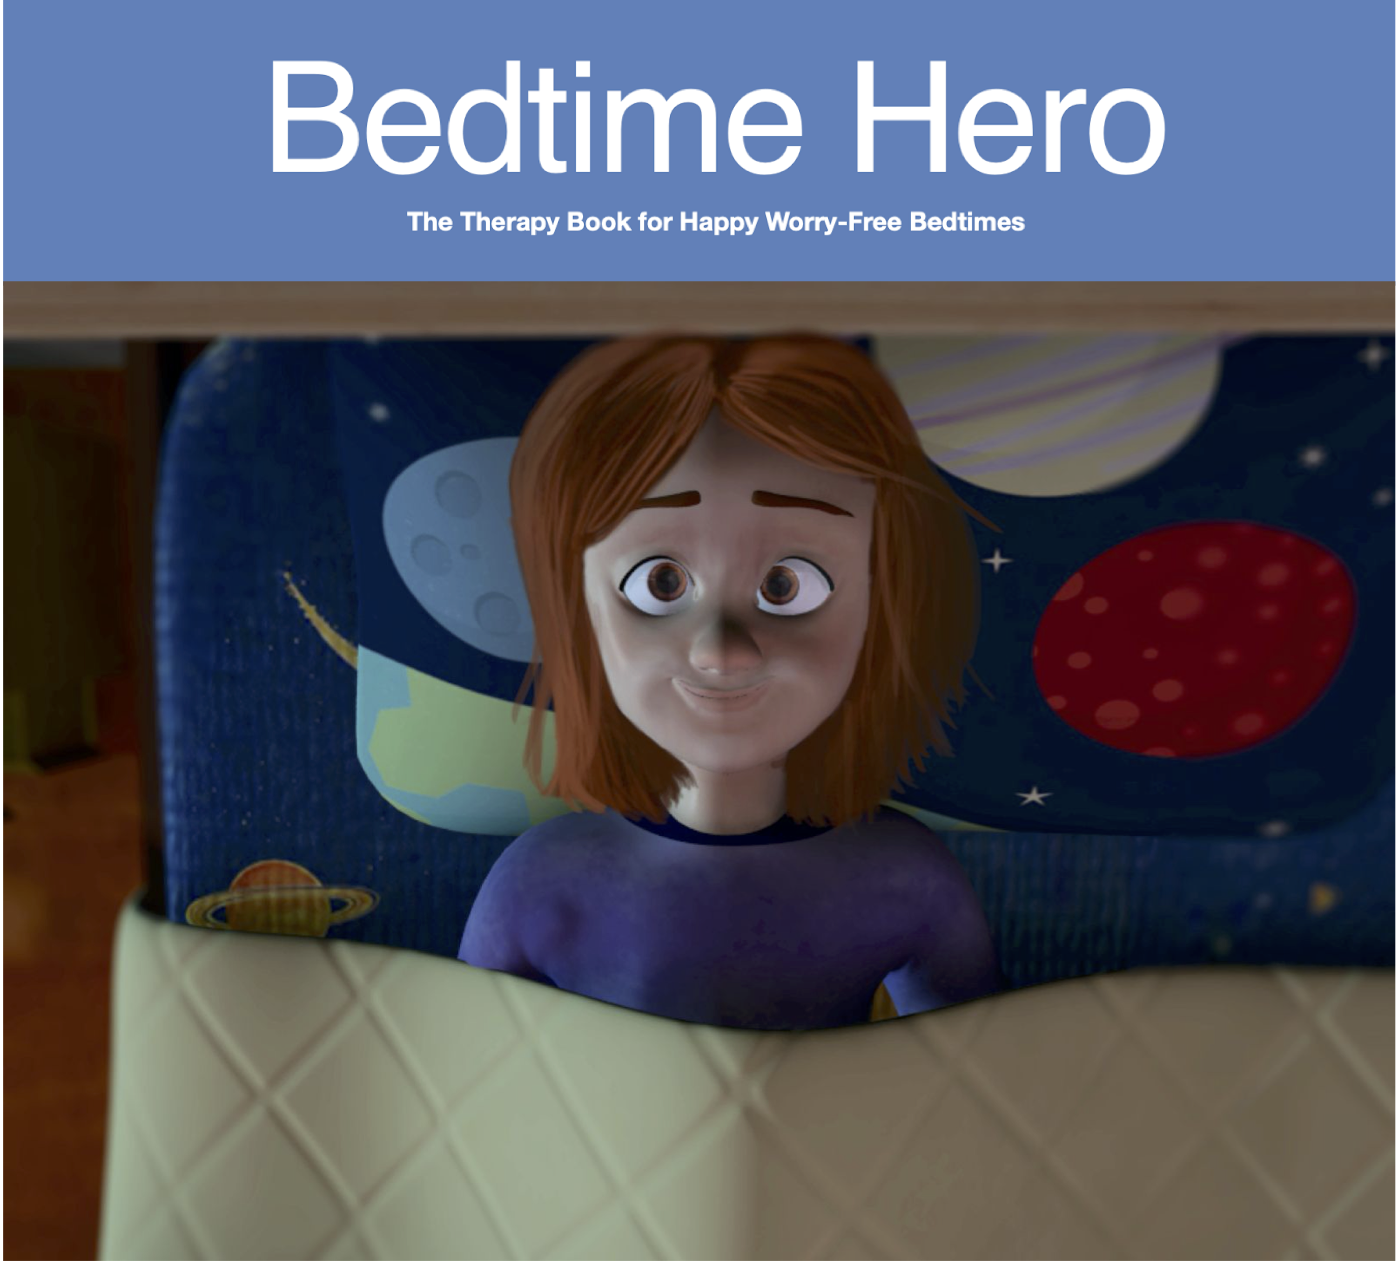 The therapy book for the child who is afraid of sleeping alone